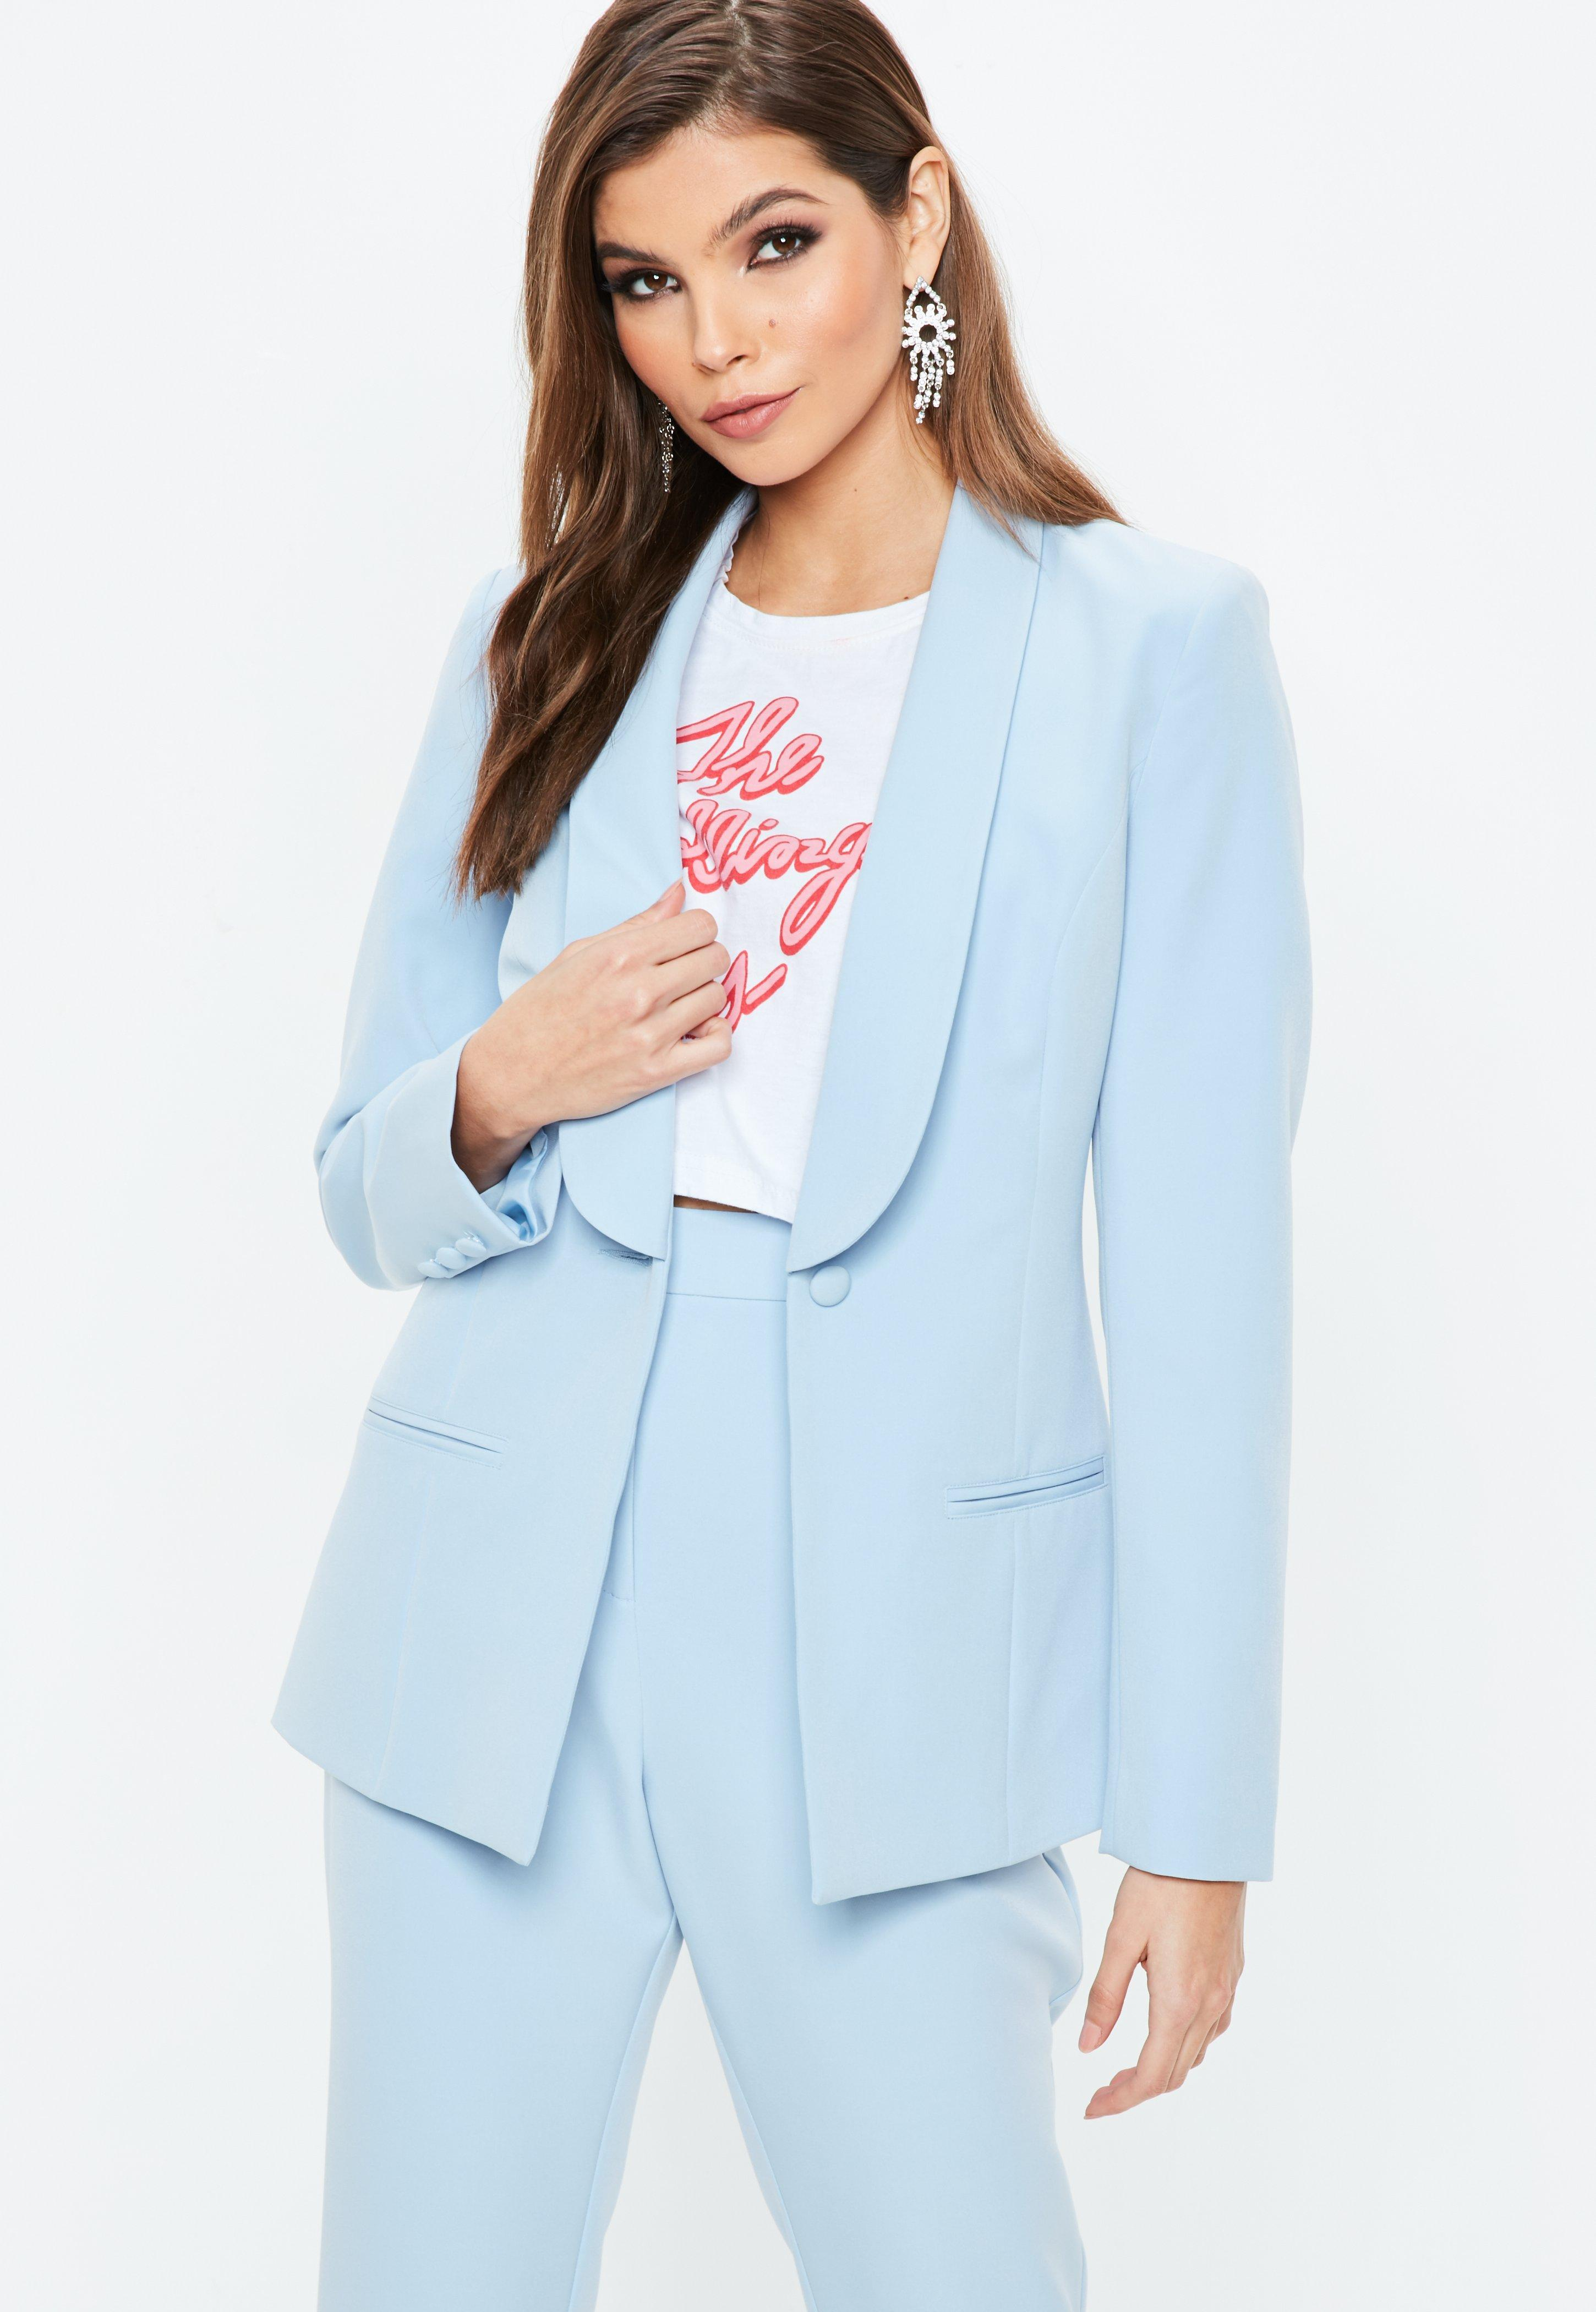 Fashionable Missguided Skinny Tux Jacket Free Shipping Low Shipping Fee Discount Shop Official Sale Online Free Shipping Fashion Style 1L06AKYX